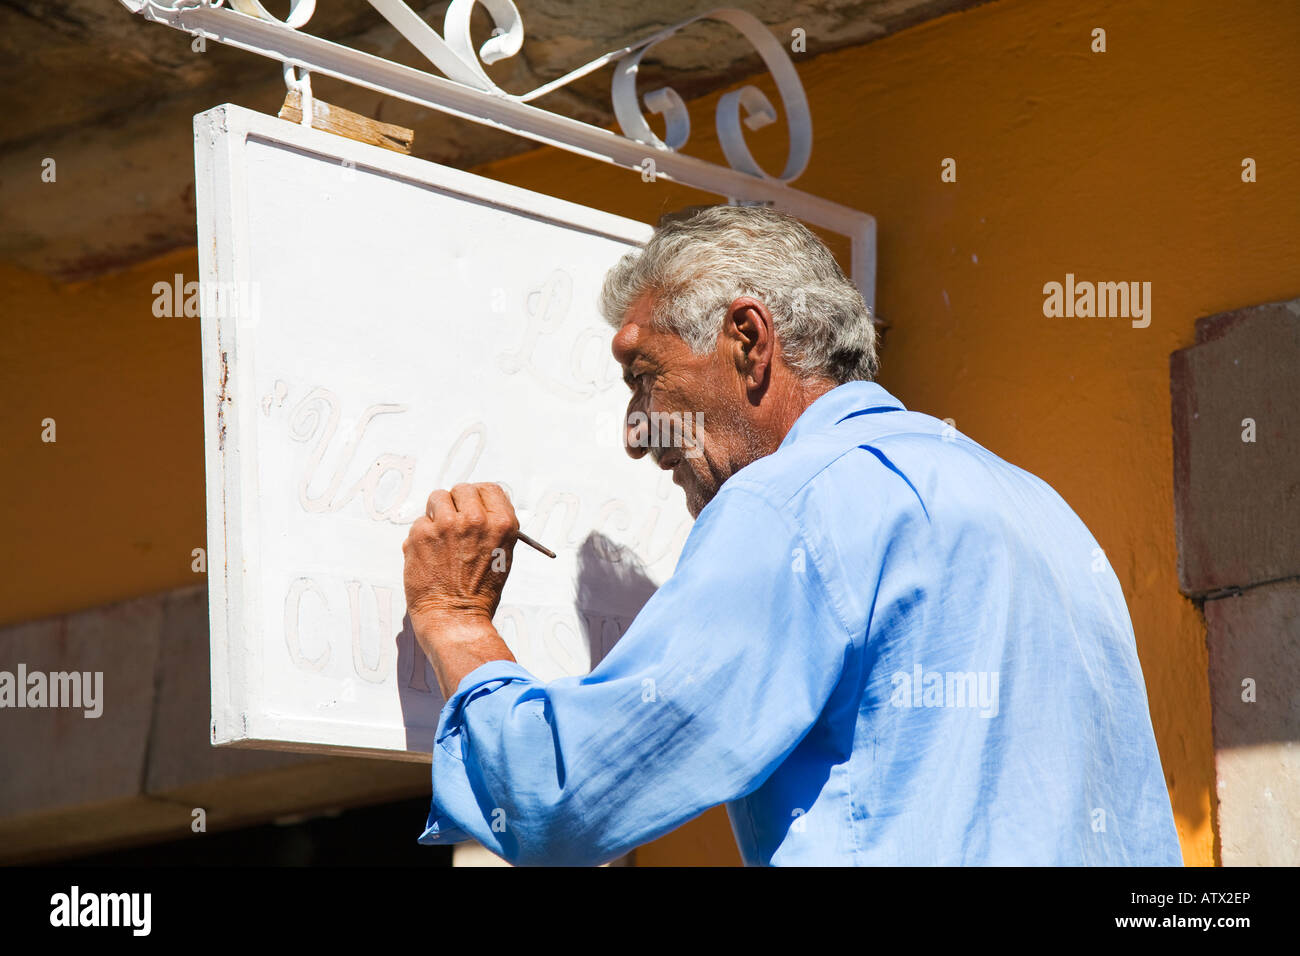 MEXICO Valenciana Older Mexican man handpainting sign for store left handed - Stock Image